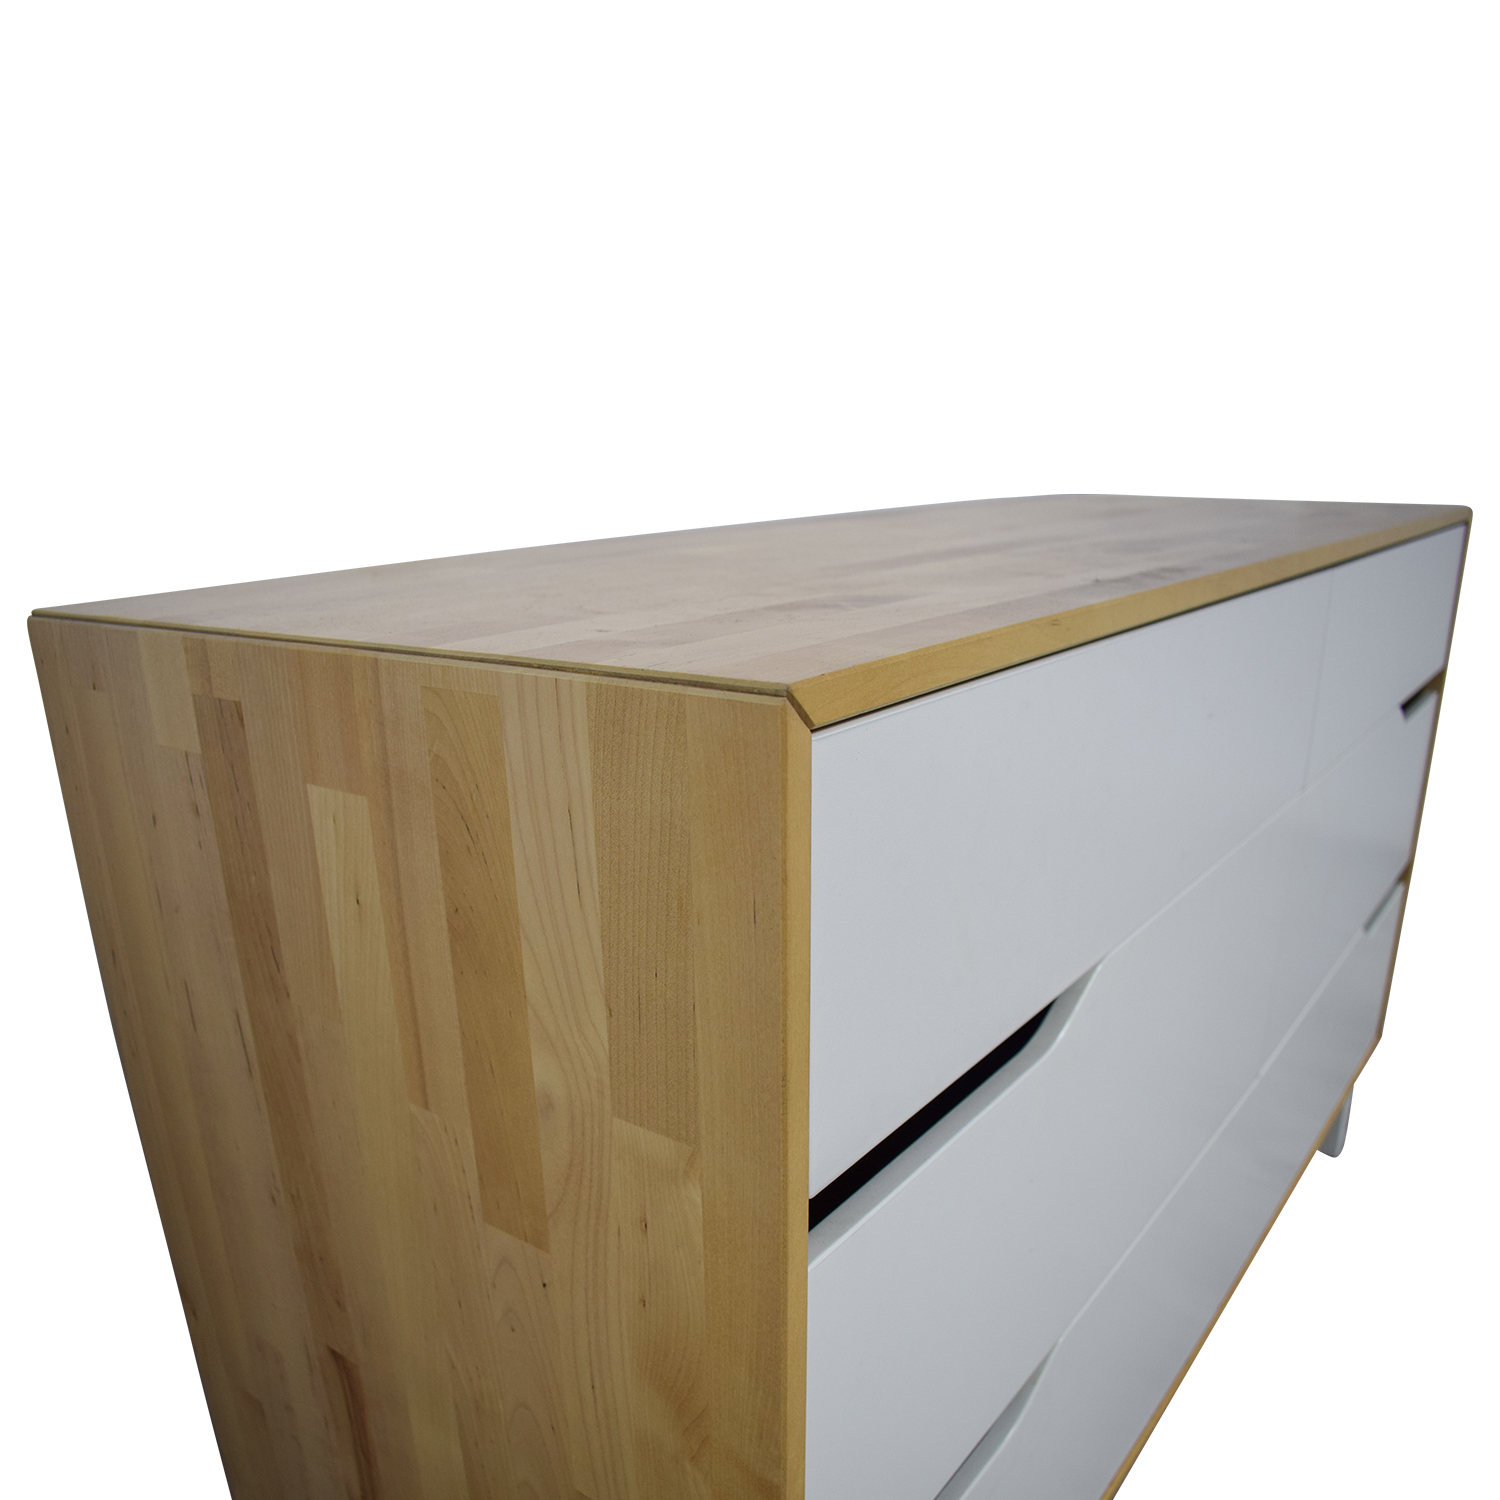 Ikea Mandal Nachfolger 51% Off - Ikea Ikea Mandal White And Natural Six-drawer